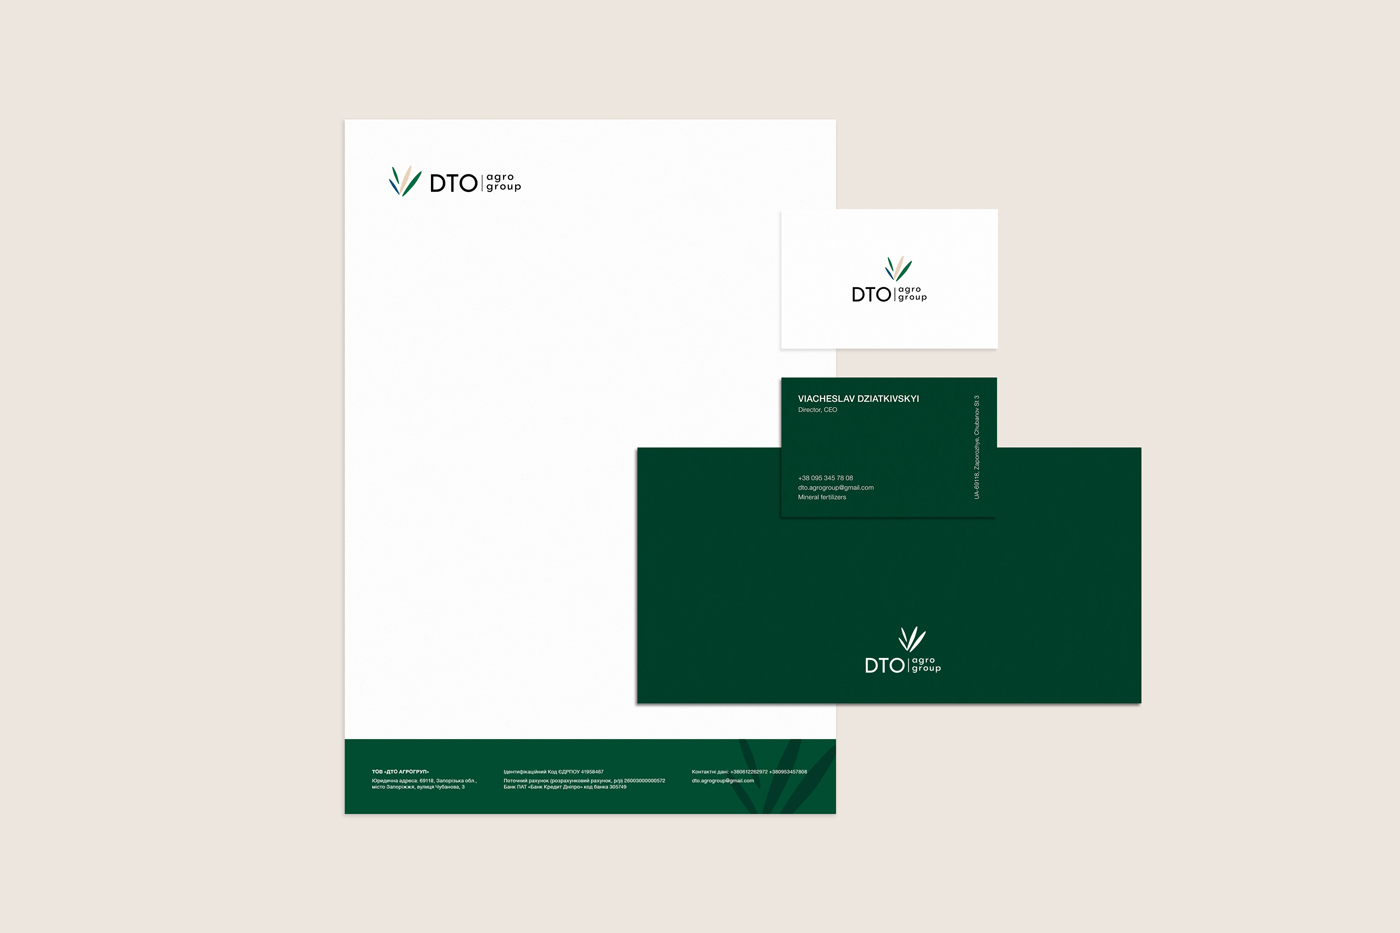 Brand identity and logo. Letterhead, envelope and business cards for ukrainian agricultural company DTO